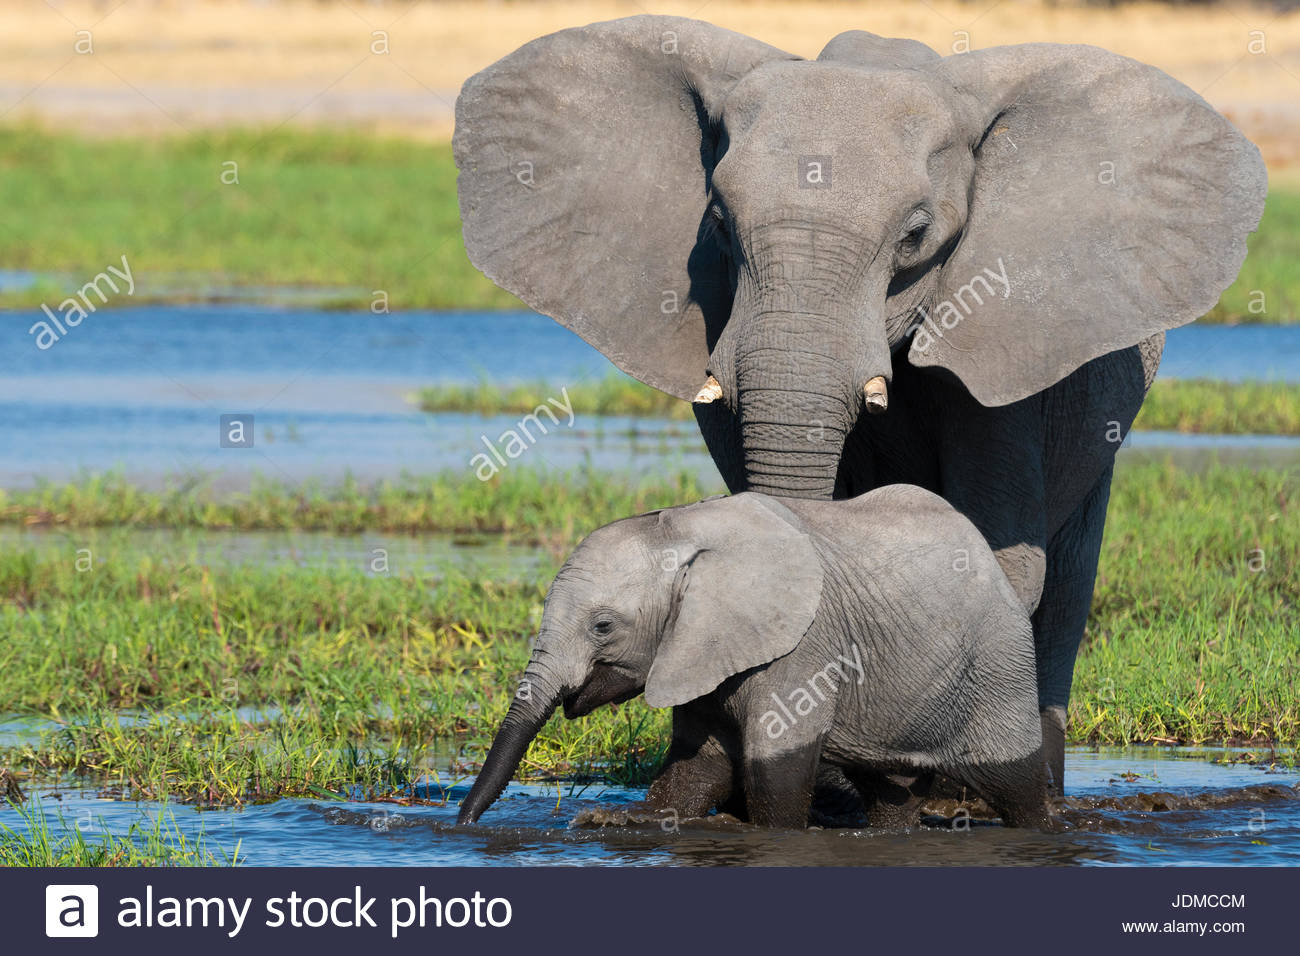 A female African elephant and calf, Loxodonta africana, drinking in the river Khwai. - Stock Image